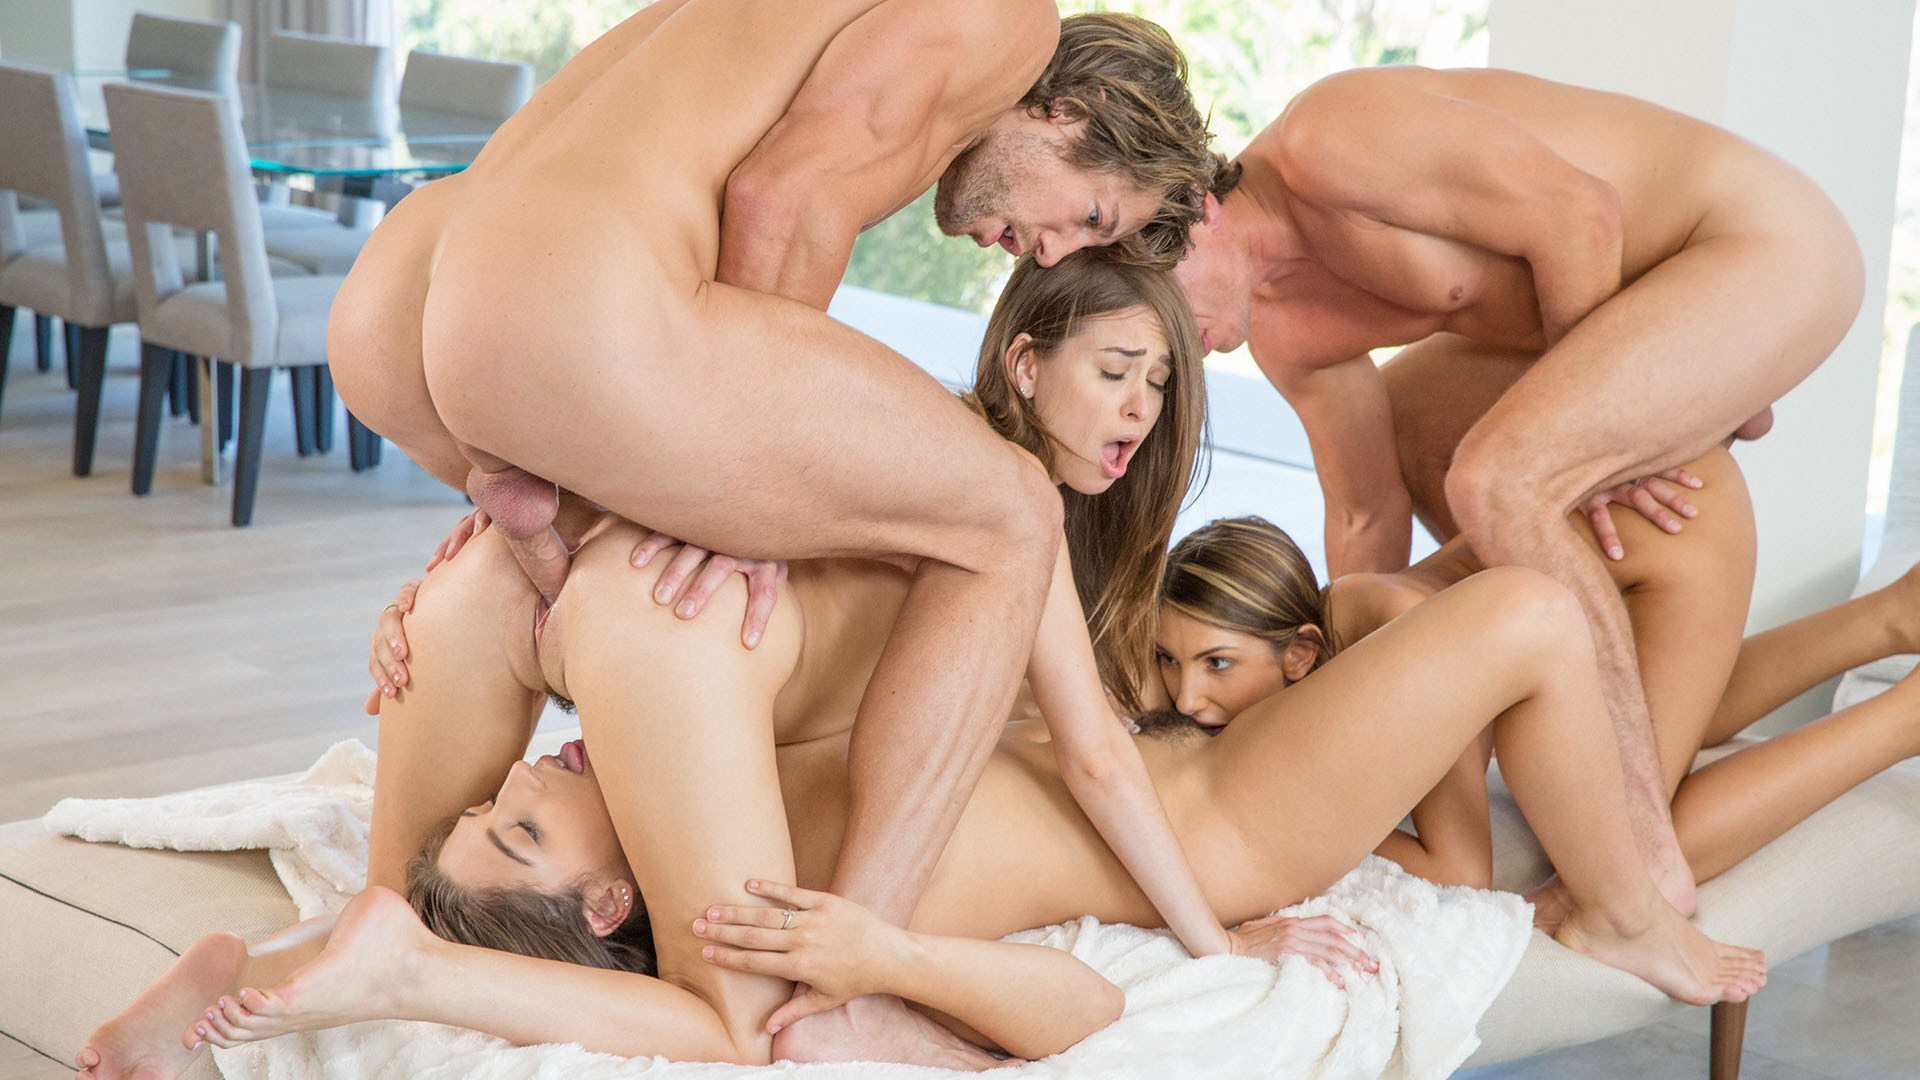 Group sex is what I need for my hunger!